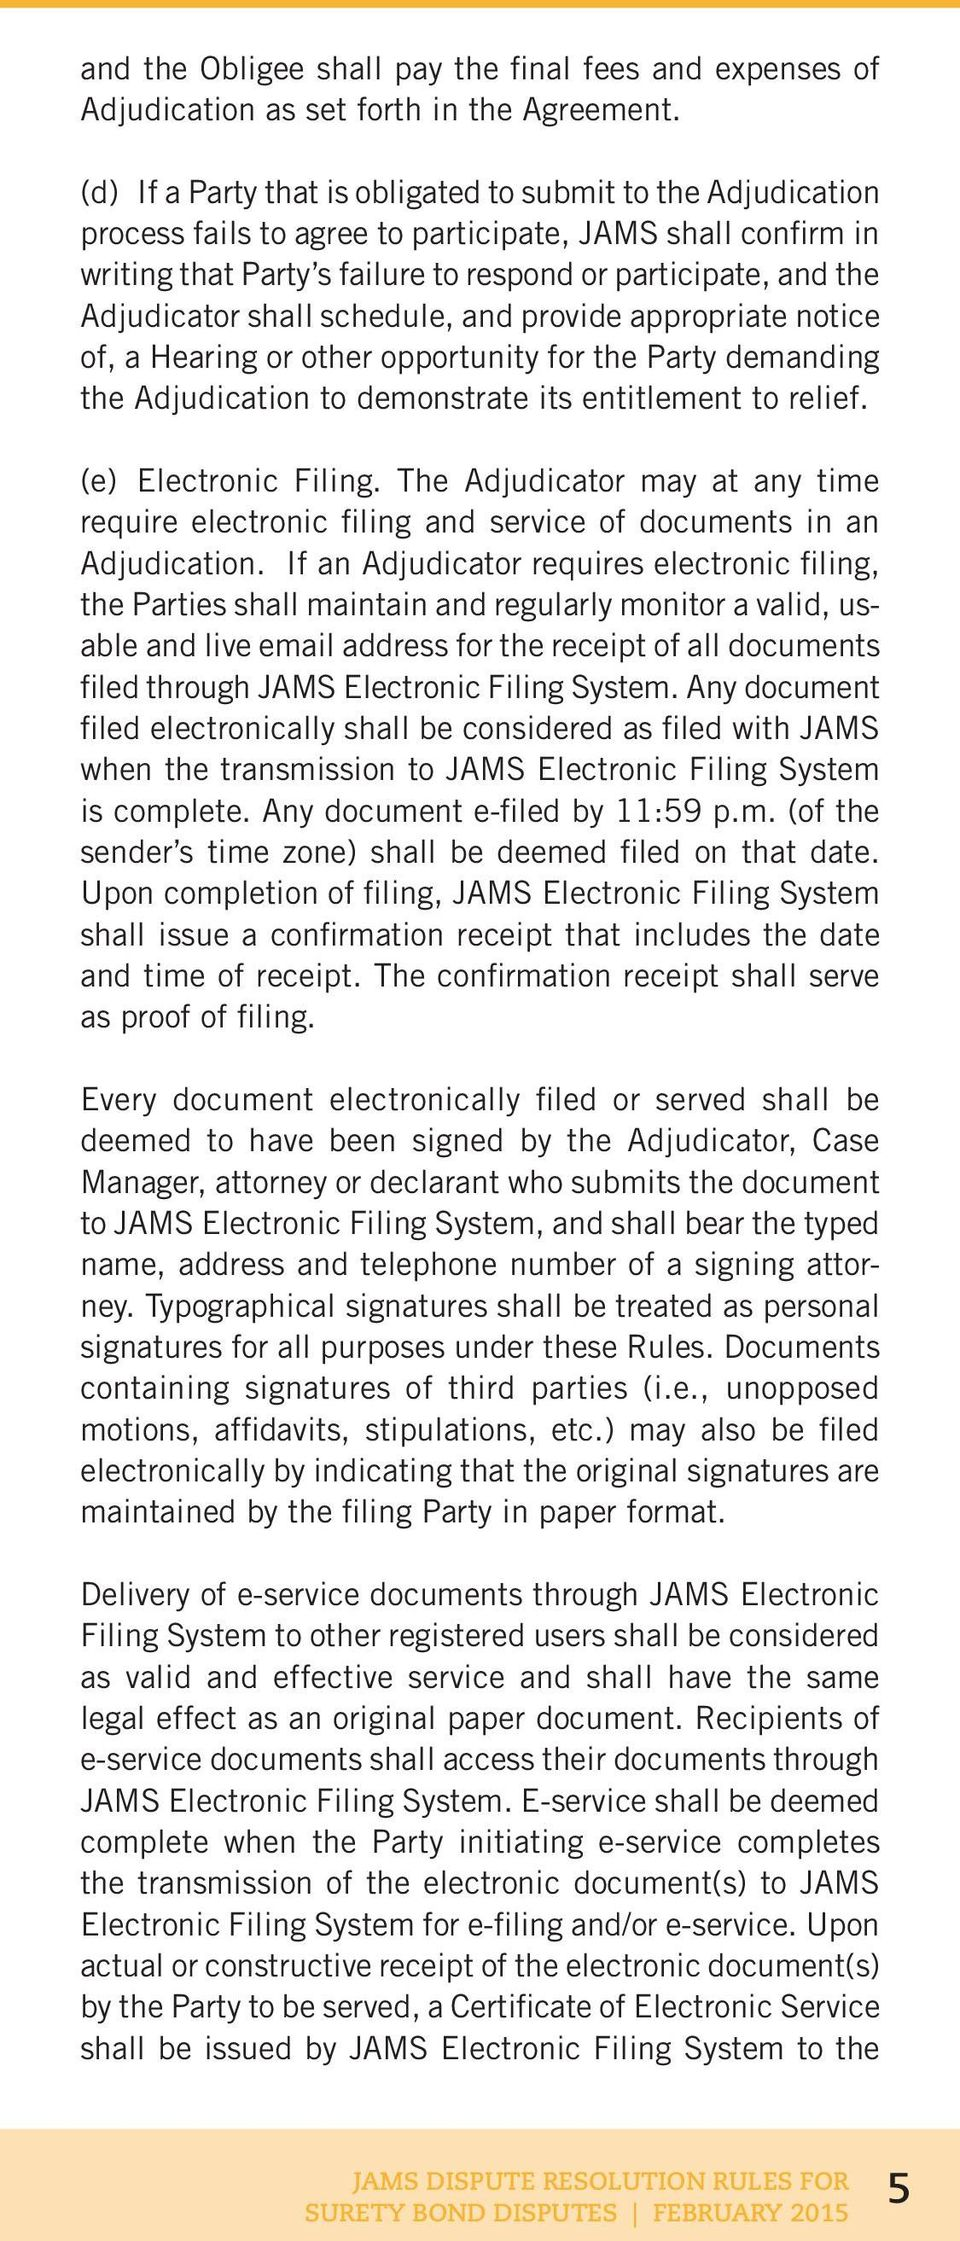 shall schedule, and provide appropriate notice of, a Hearing or other opportunity for the Party demanding the Adjudication to demonstrate its entitlement to relief. (e) Electronic Filing.